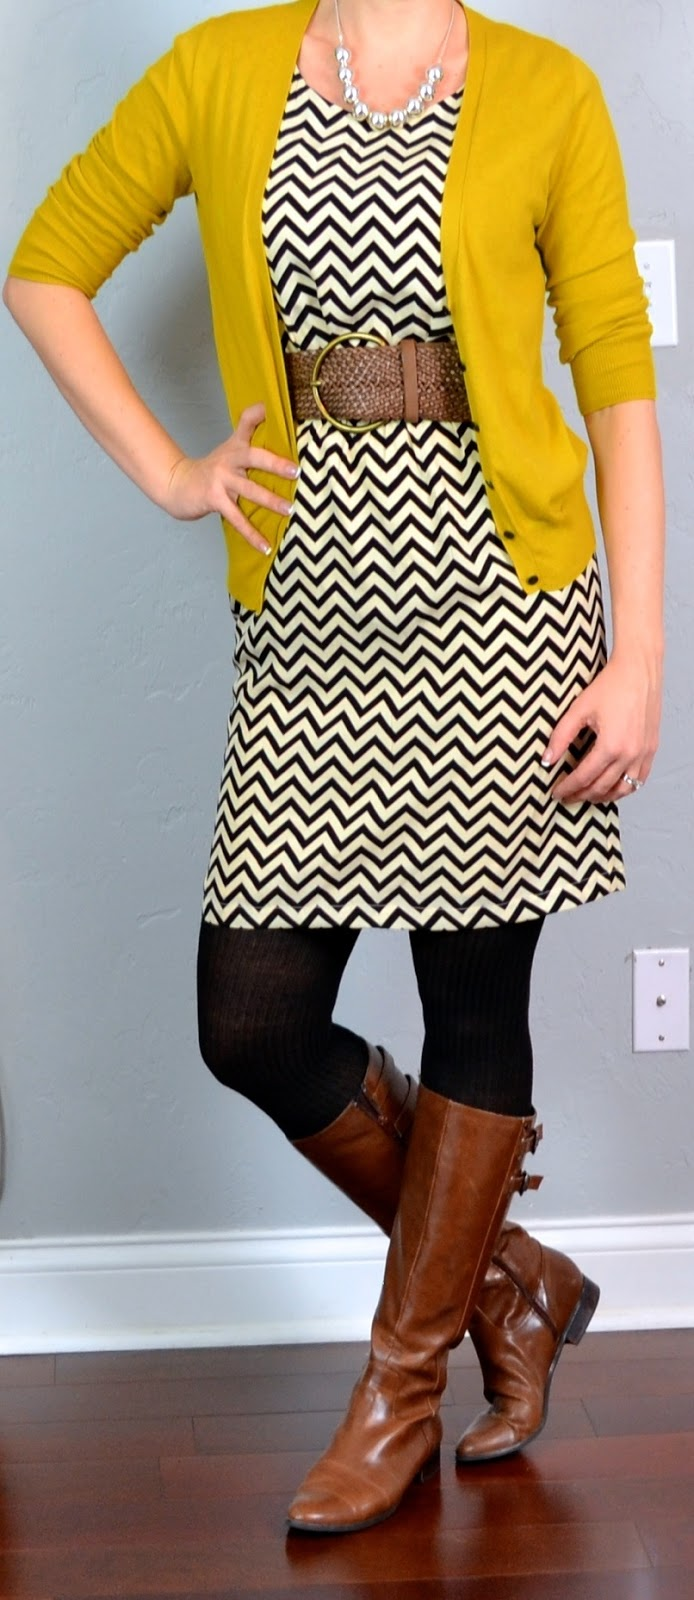 Outfit Posts: outfit post: chevron dress, mustard cardigan